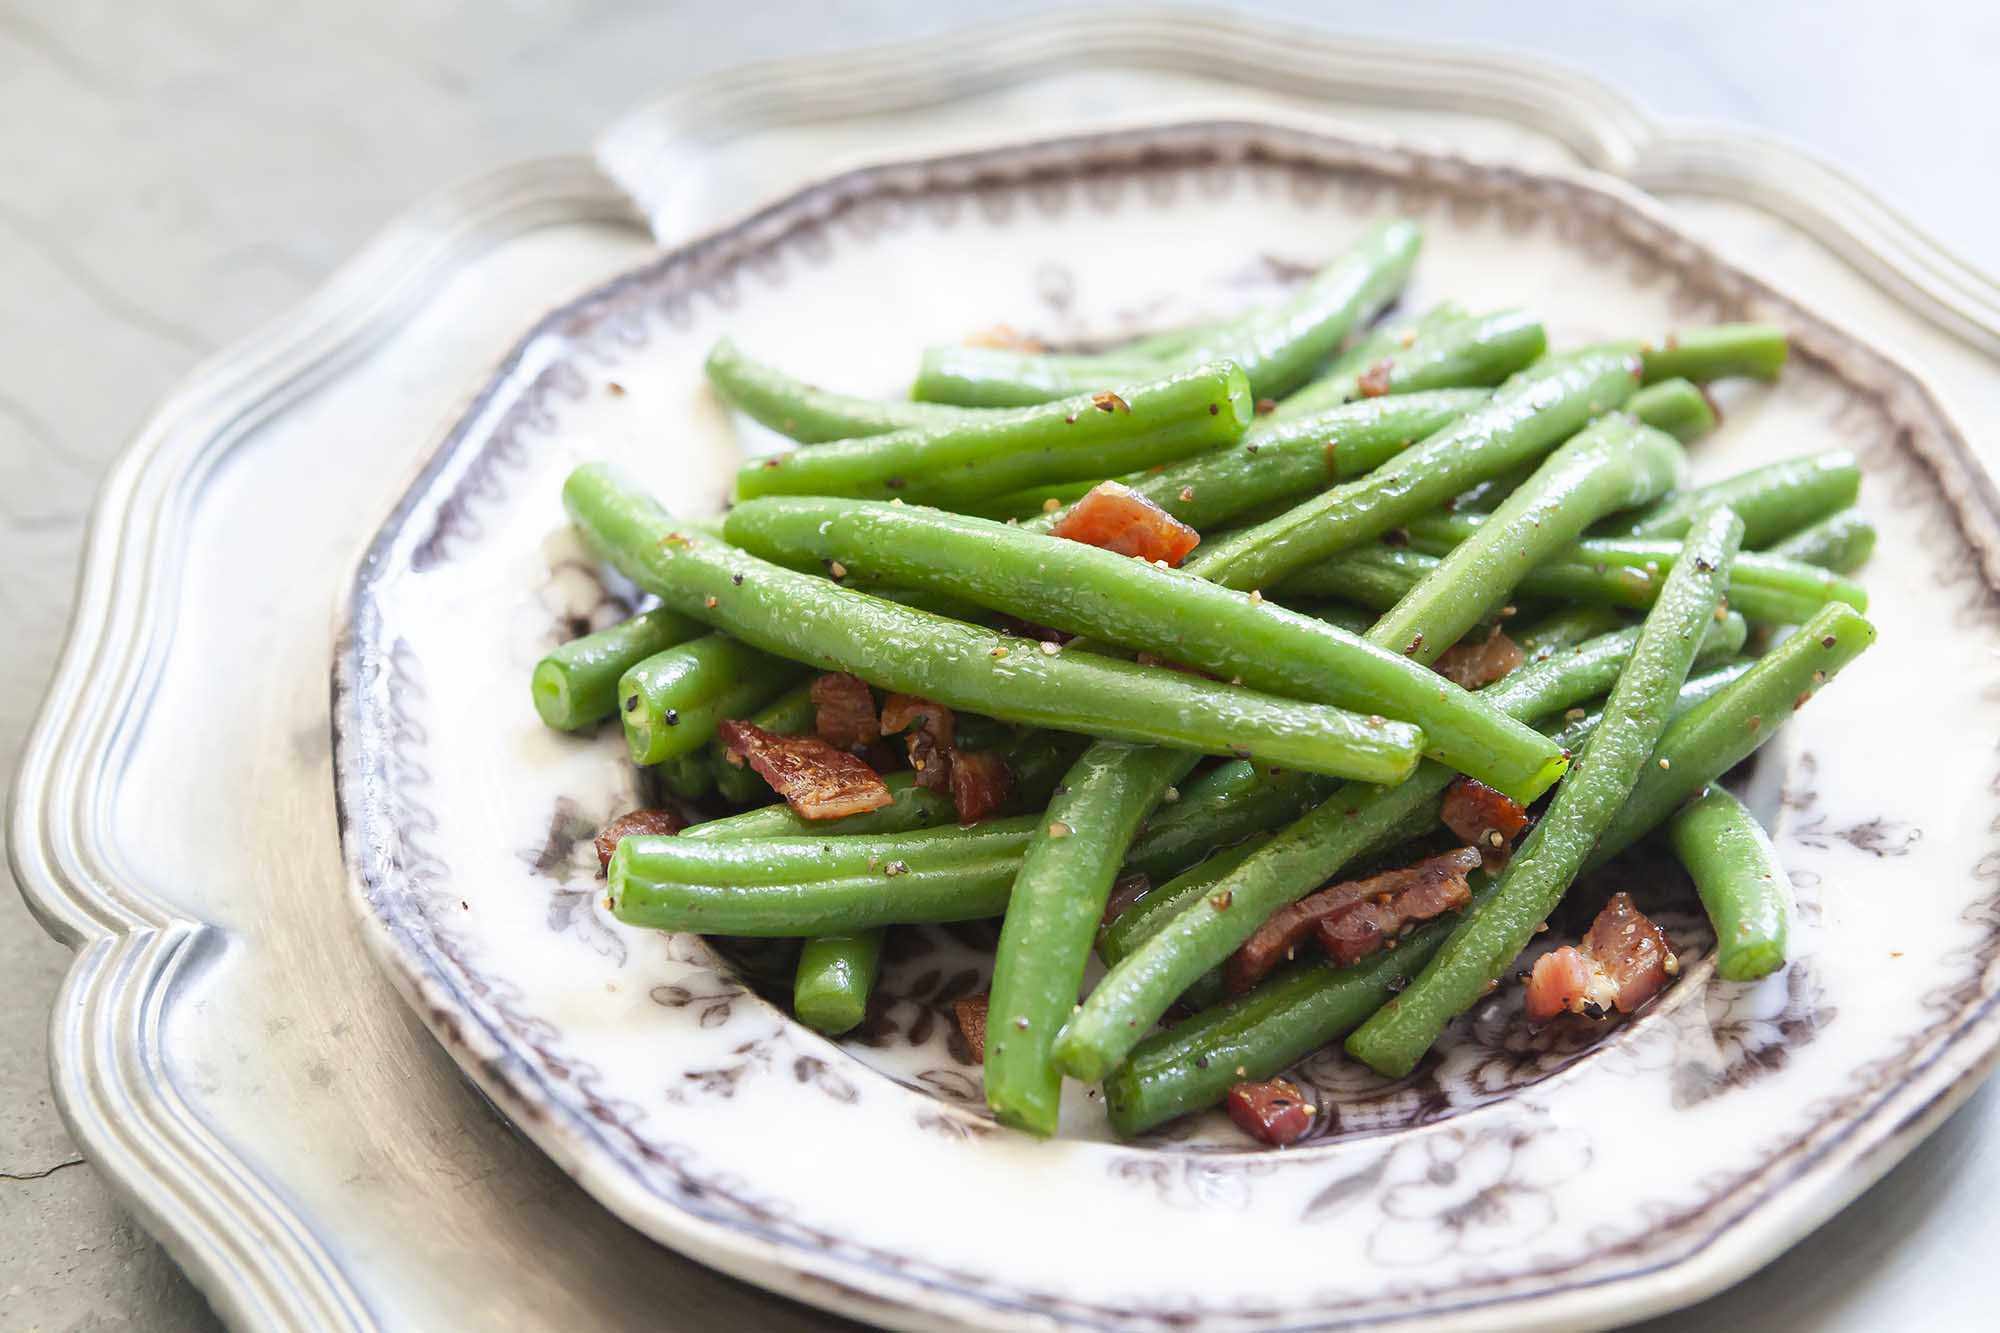 Side shot of fresh green beans, blanched and sauteed with bacon on a plate